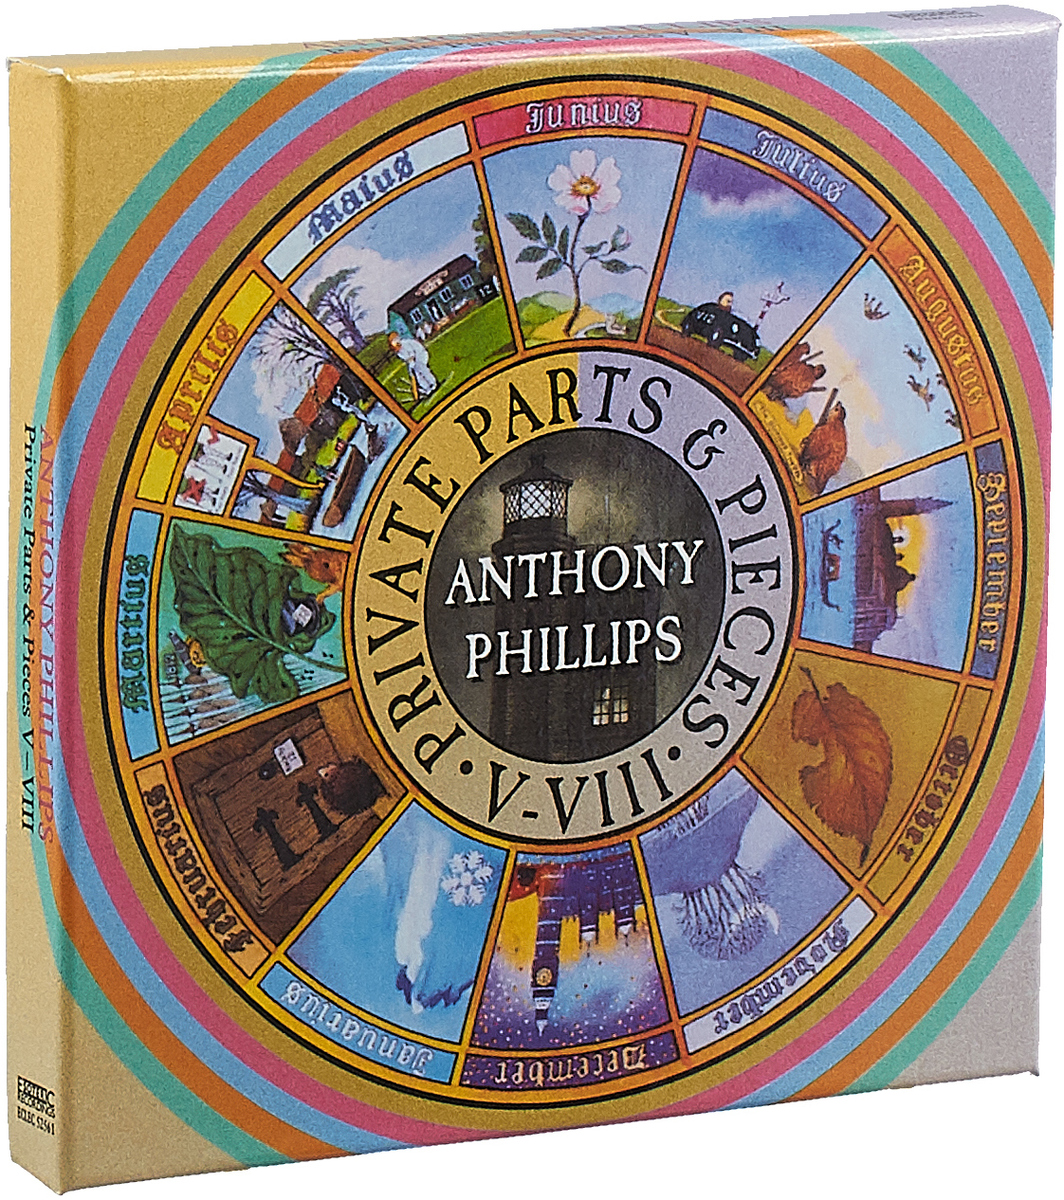 цена на Anthony Phillips Anthony Phillips. Private Parts & Pieces V-VIII (5 CD)